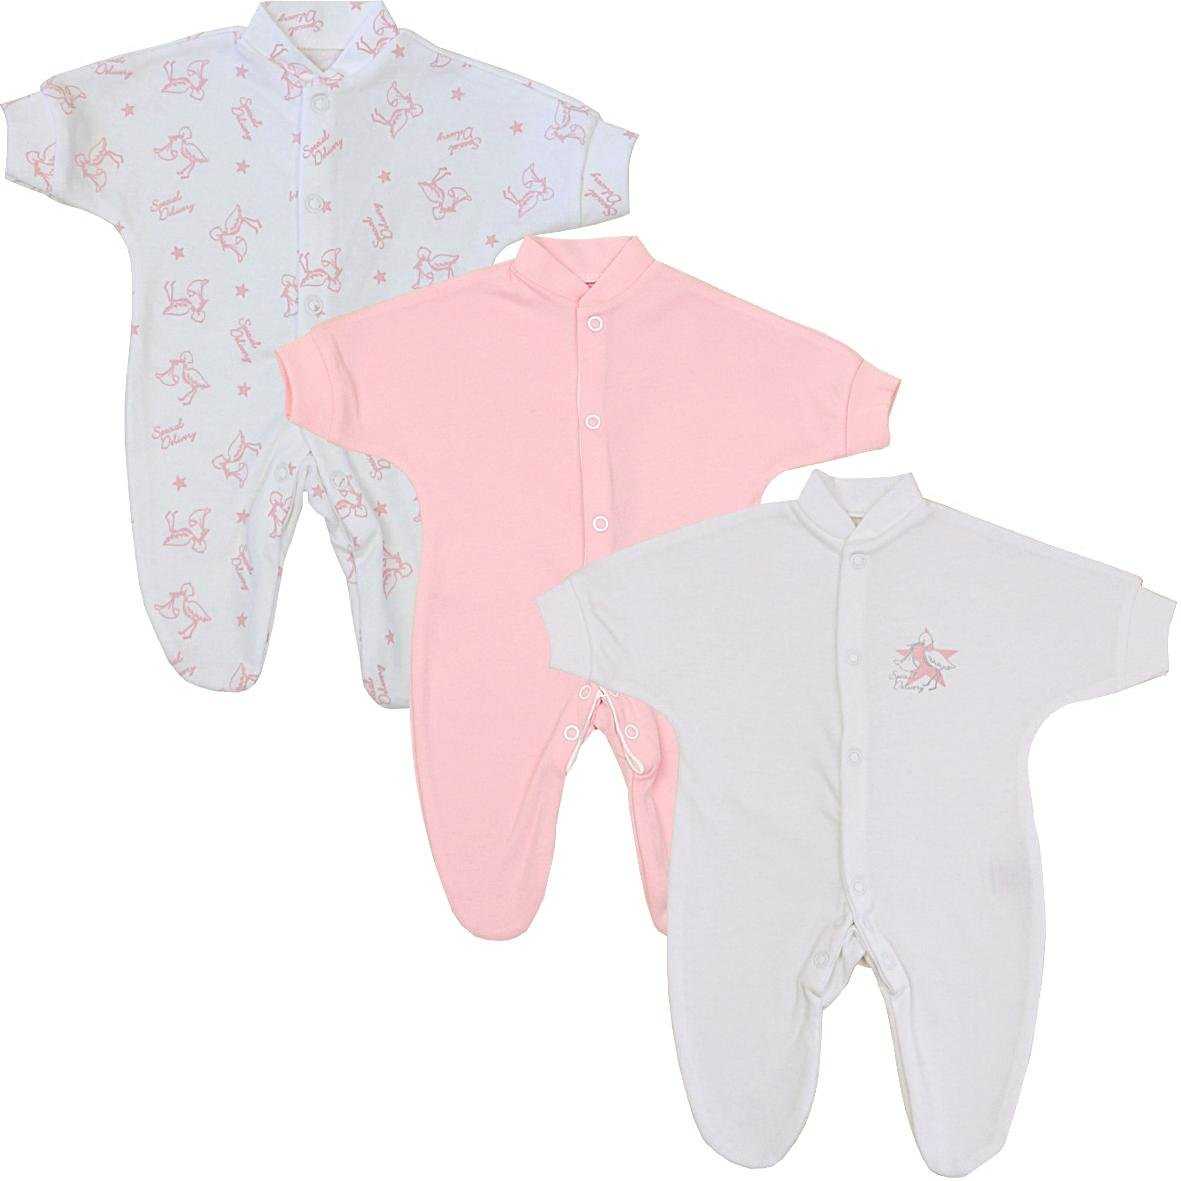 Preemie Baby Clothes Pack of 3 Sleepers / Footies 1.5 - 7.5lb Pink Teddy P1 BabyPrem